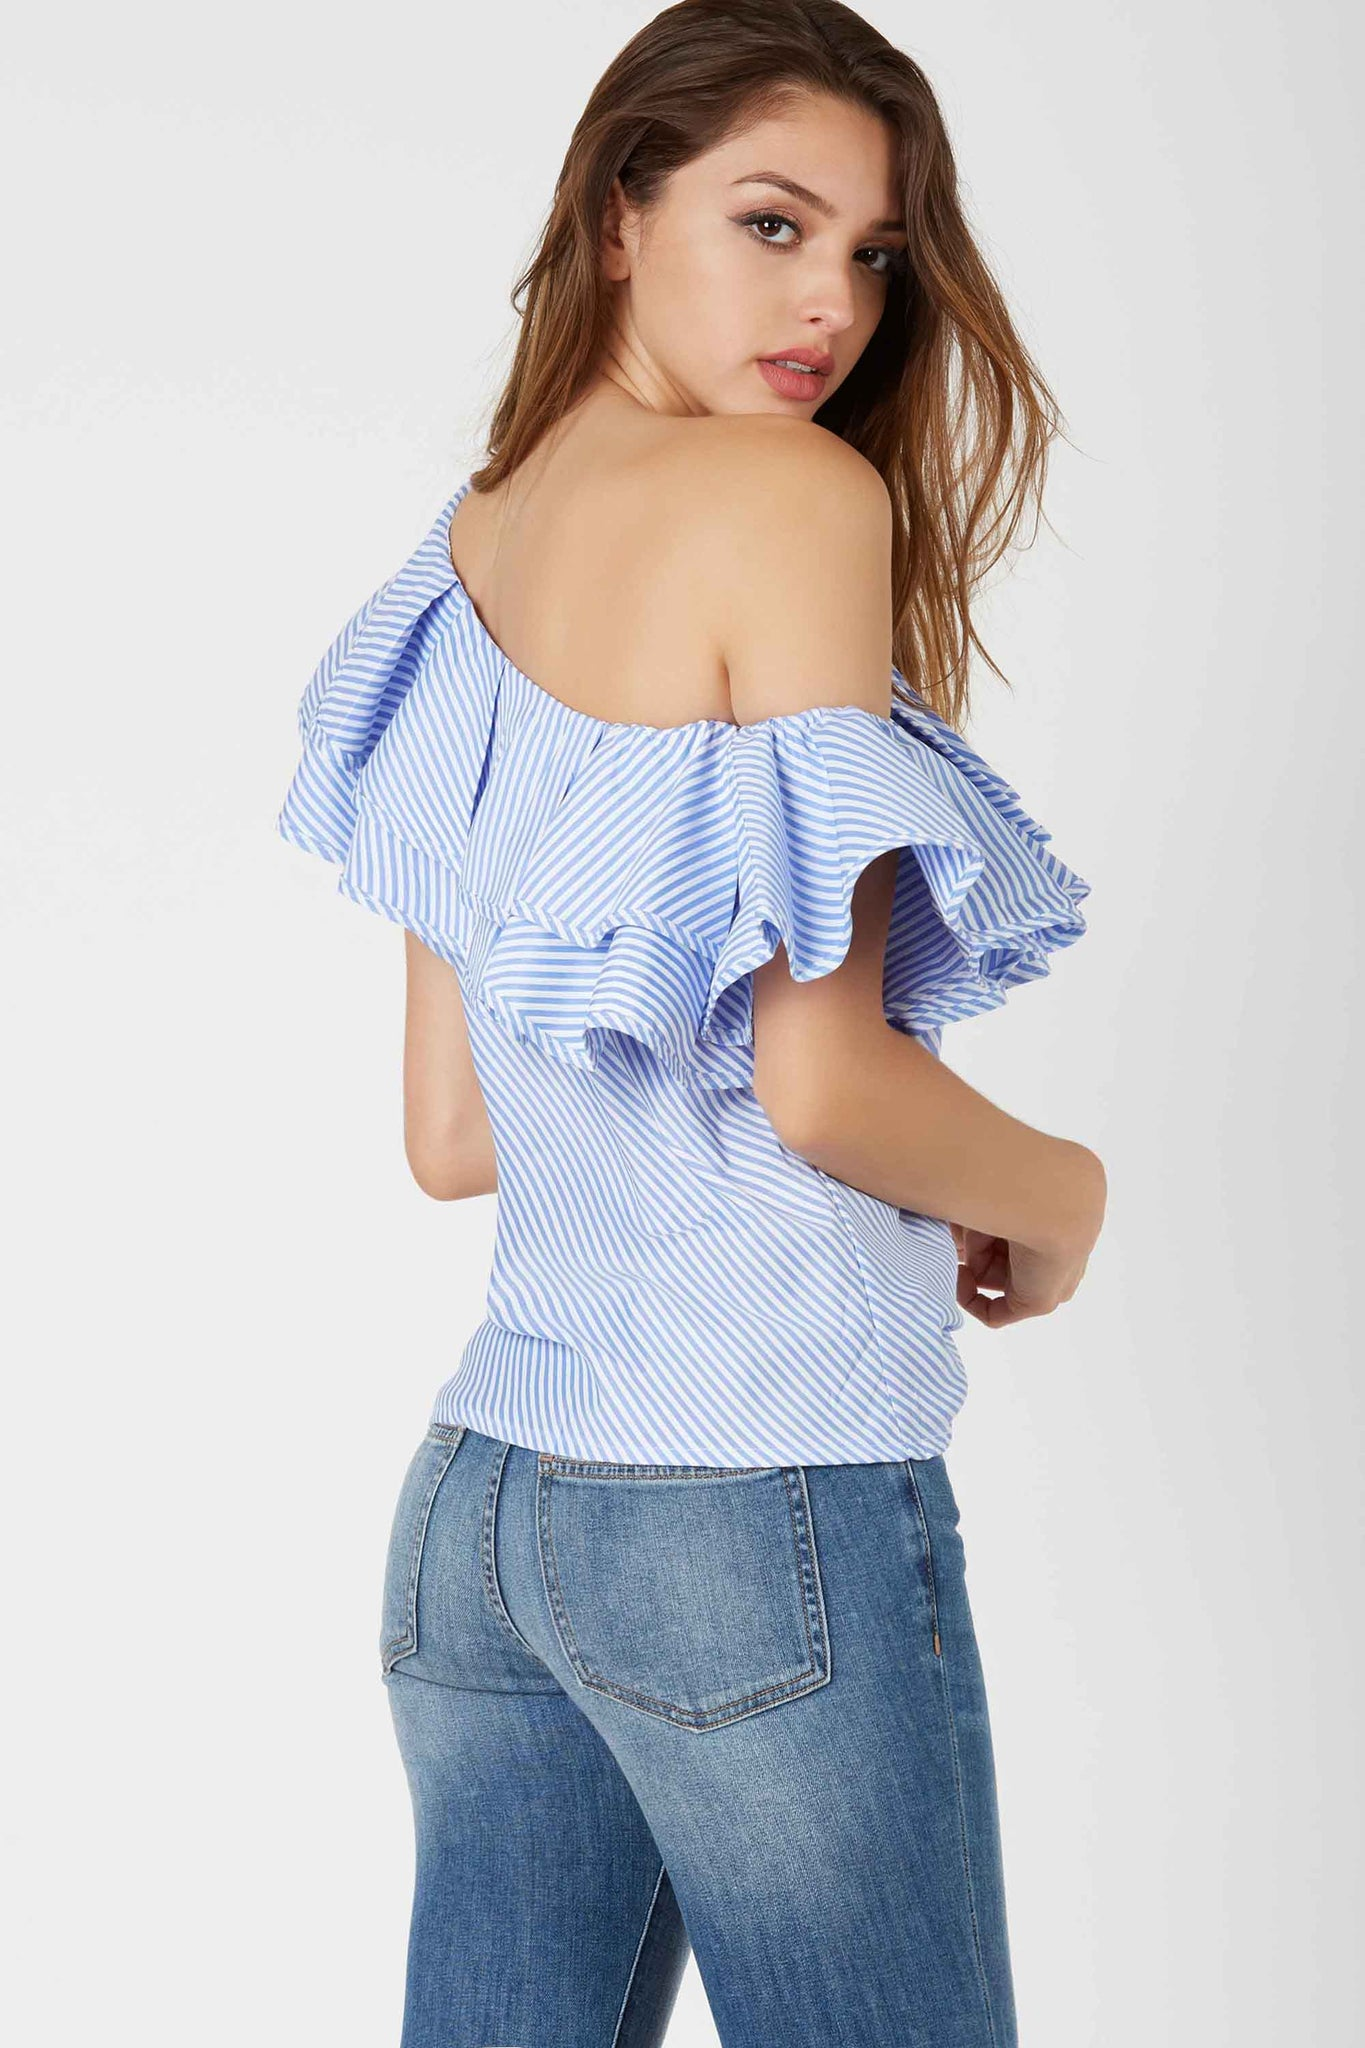 Chic one shoulder top with tiered ruffle design and stripe patterns throughout.